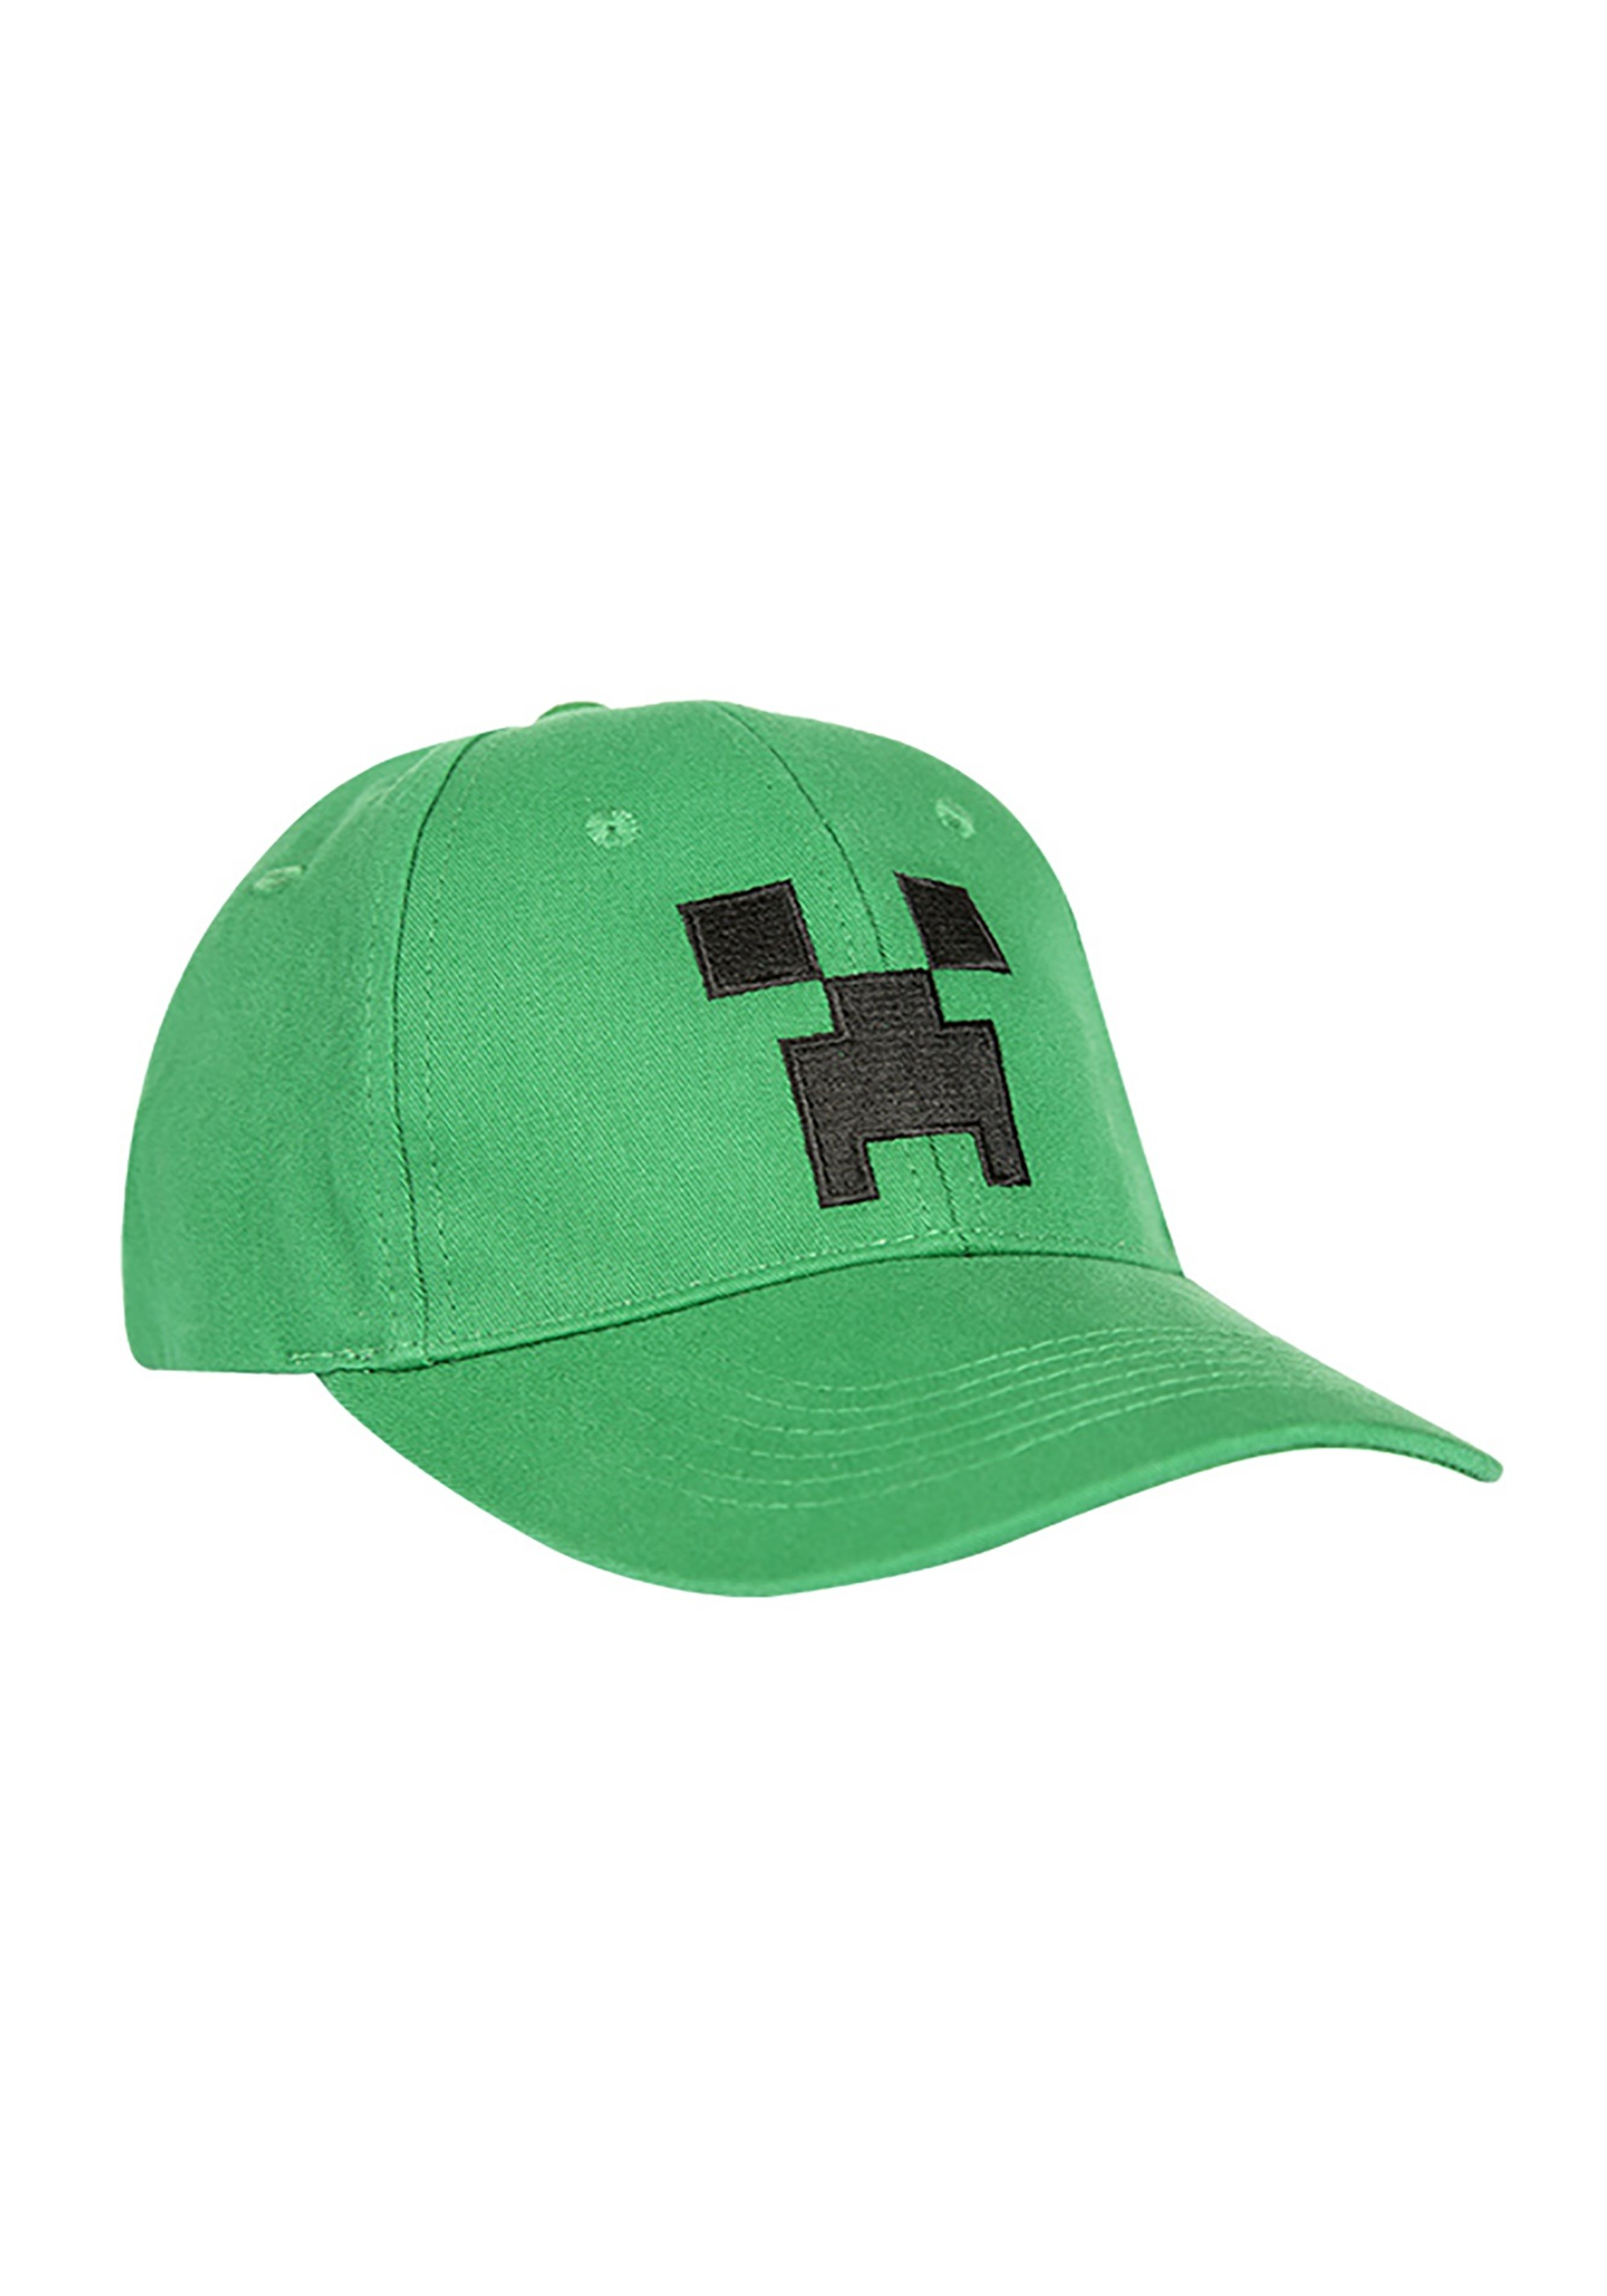 Snap-back Minecraft Creeper Hat Update1 21d66c47b3